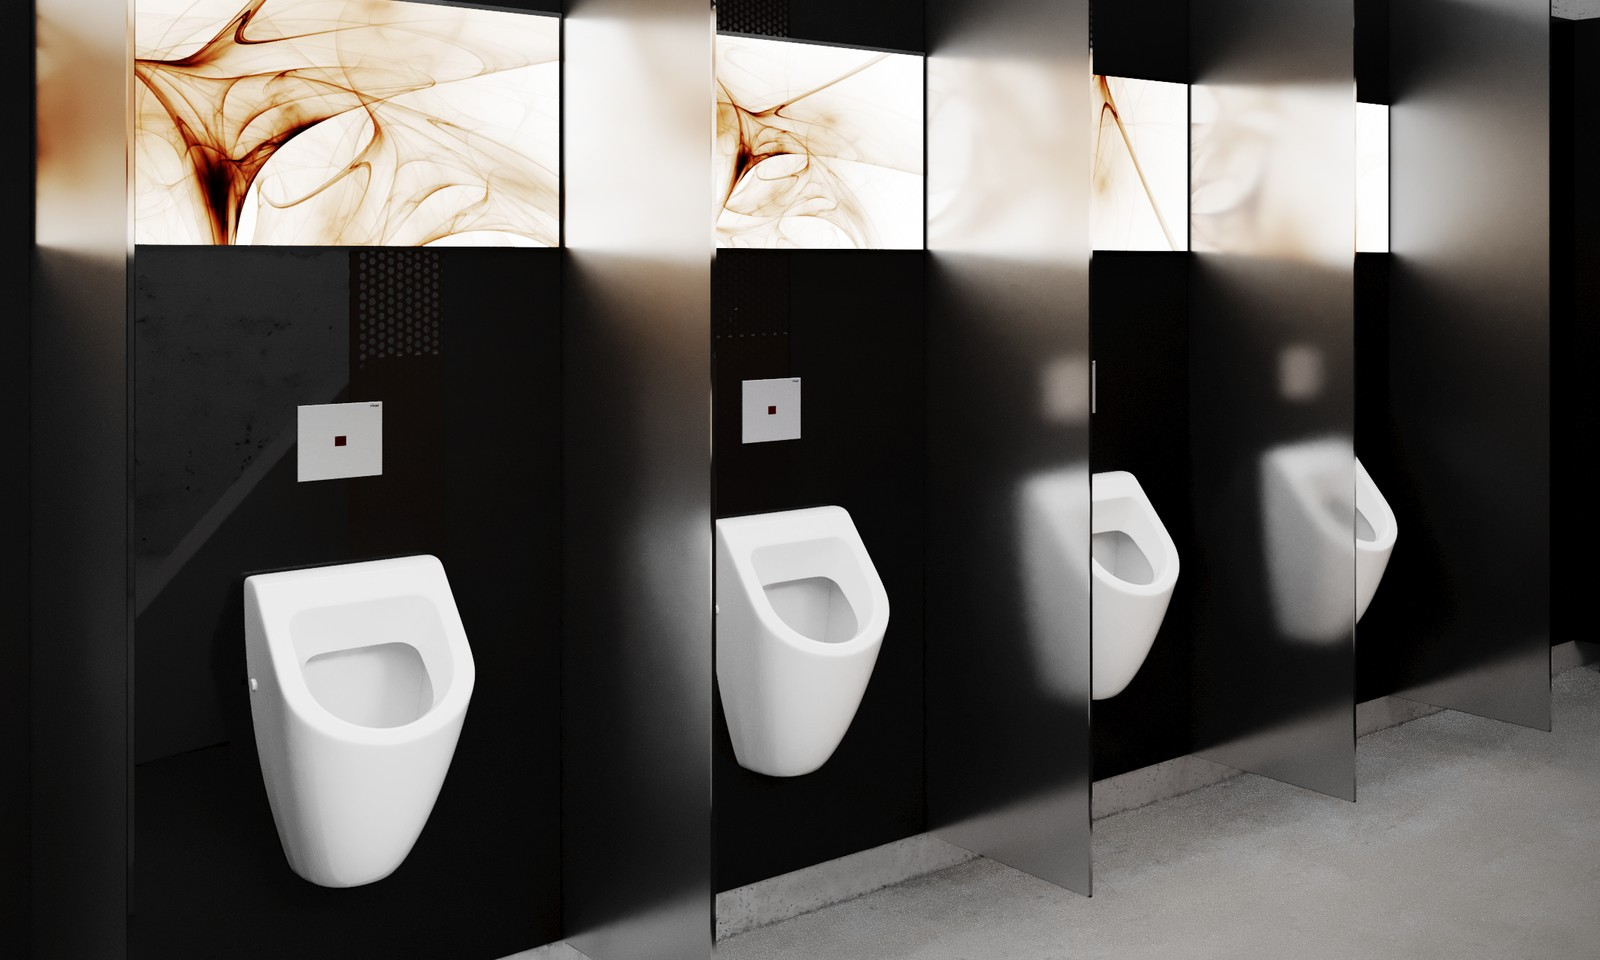 Touch-free urinal flushing technologies from Viega